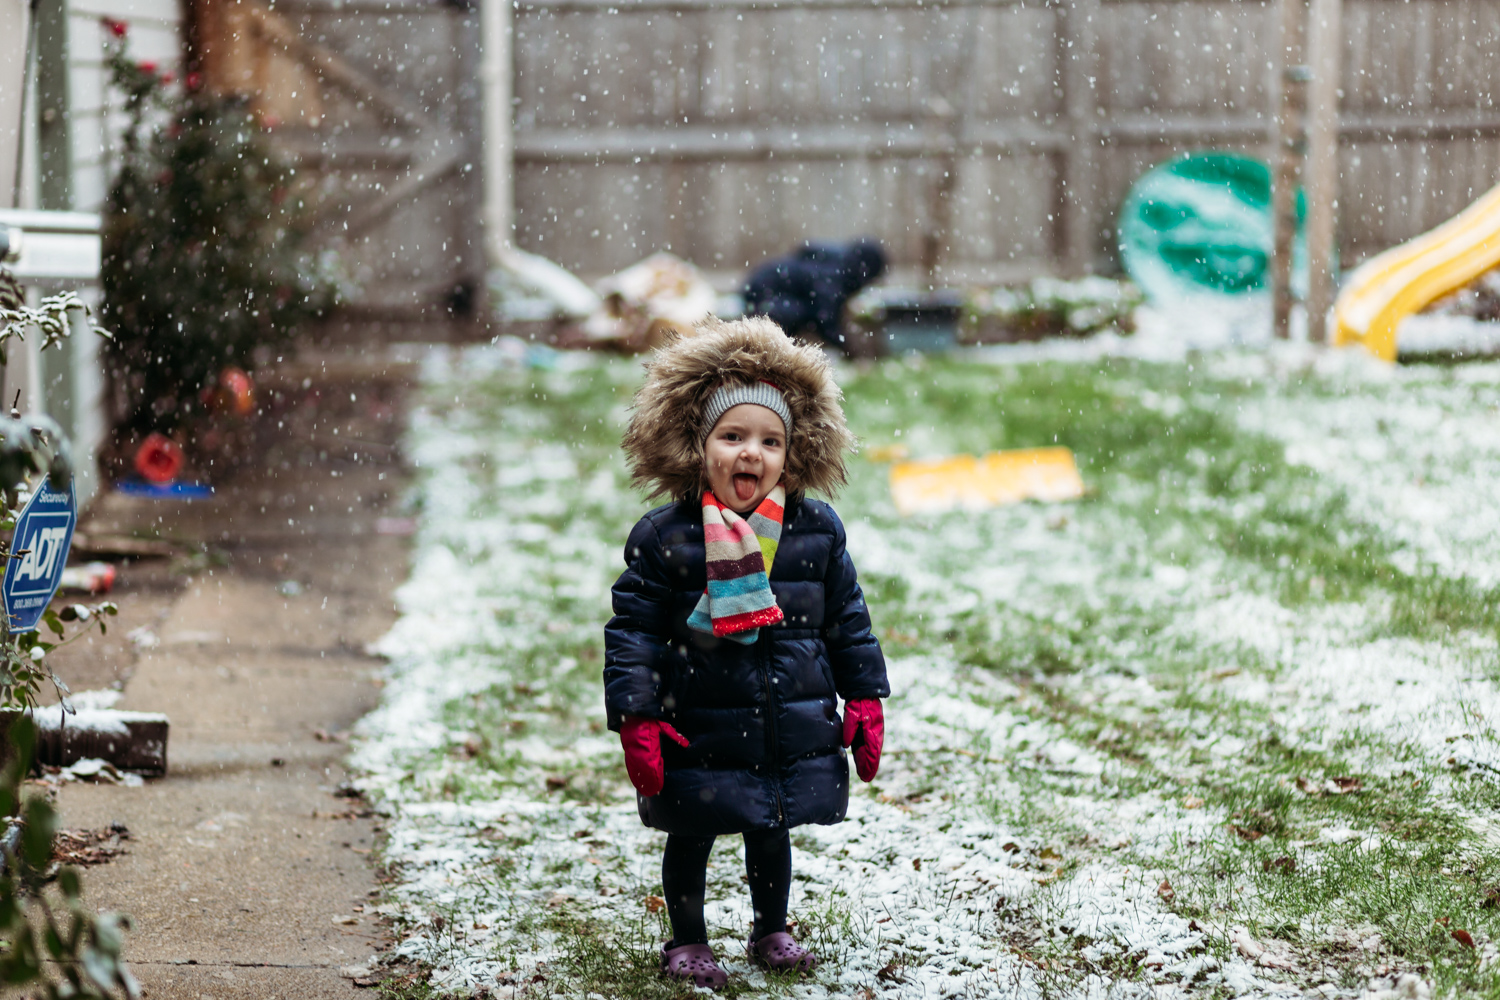 Little girl catching falling snow with her tongue.